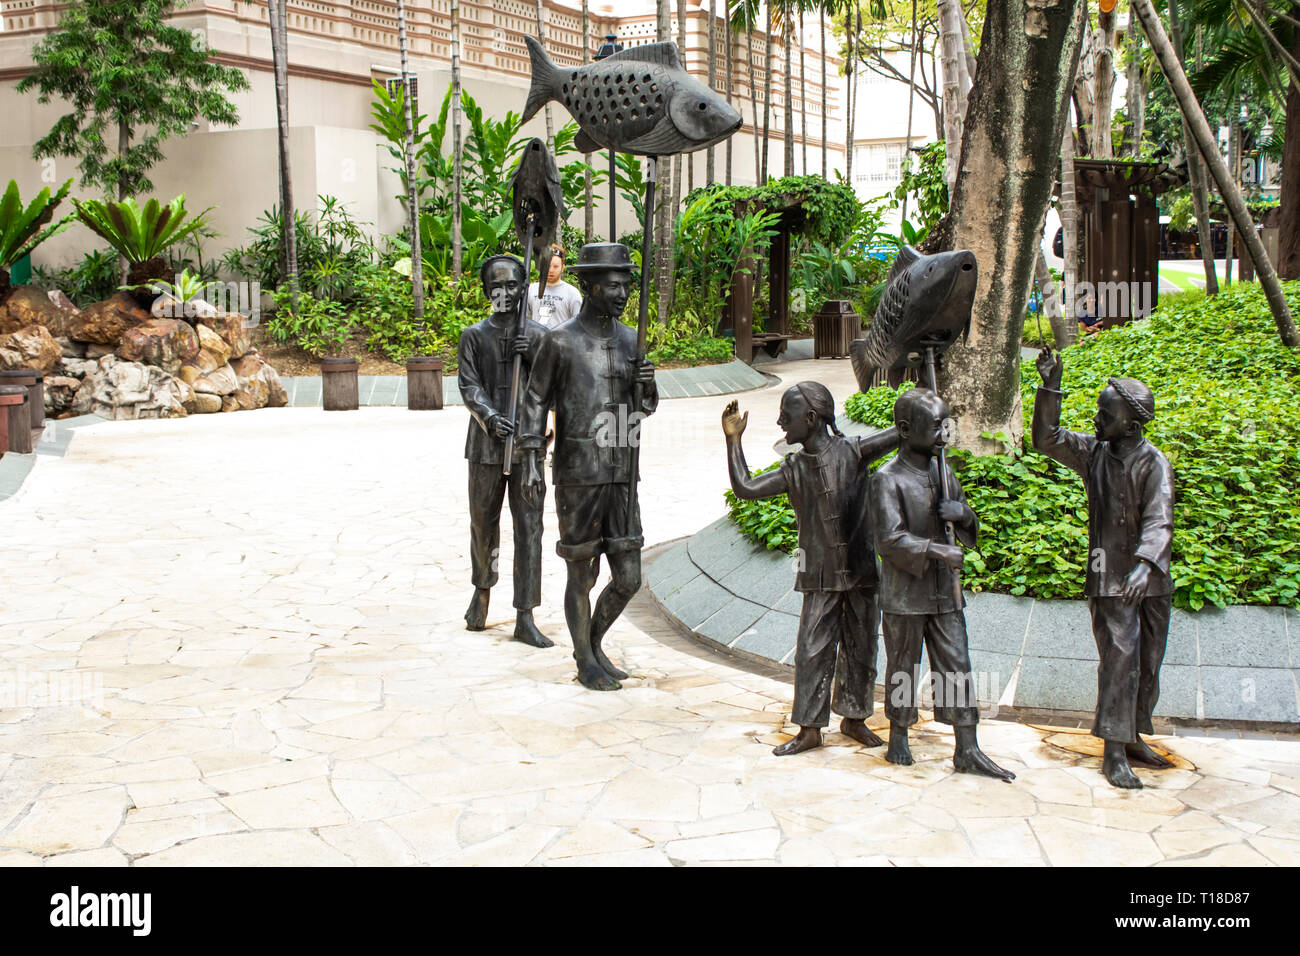 SINGAPORE - AUGUST 4, 2014: Chinese Procession sculpture at Telok Ayer Green Park in Singapore. Sculpture represents the celebratory procession of Chi - Stock Image